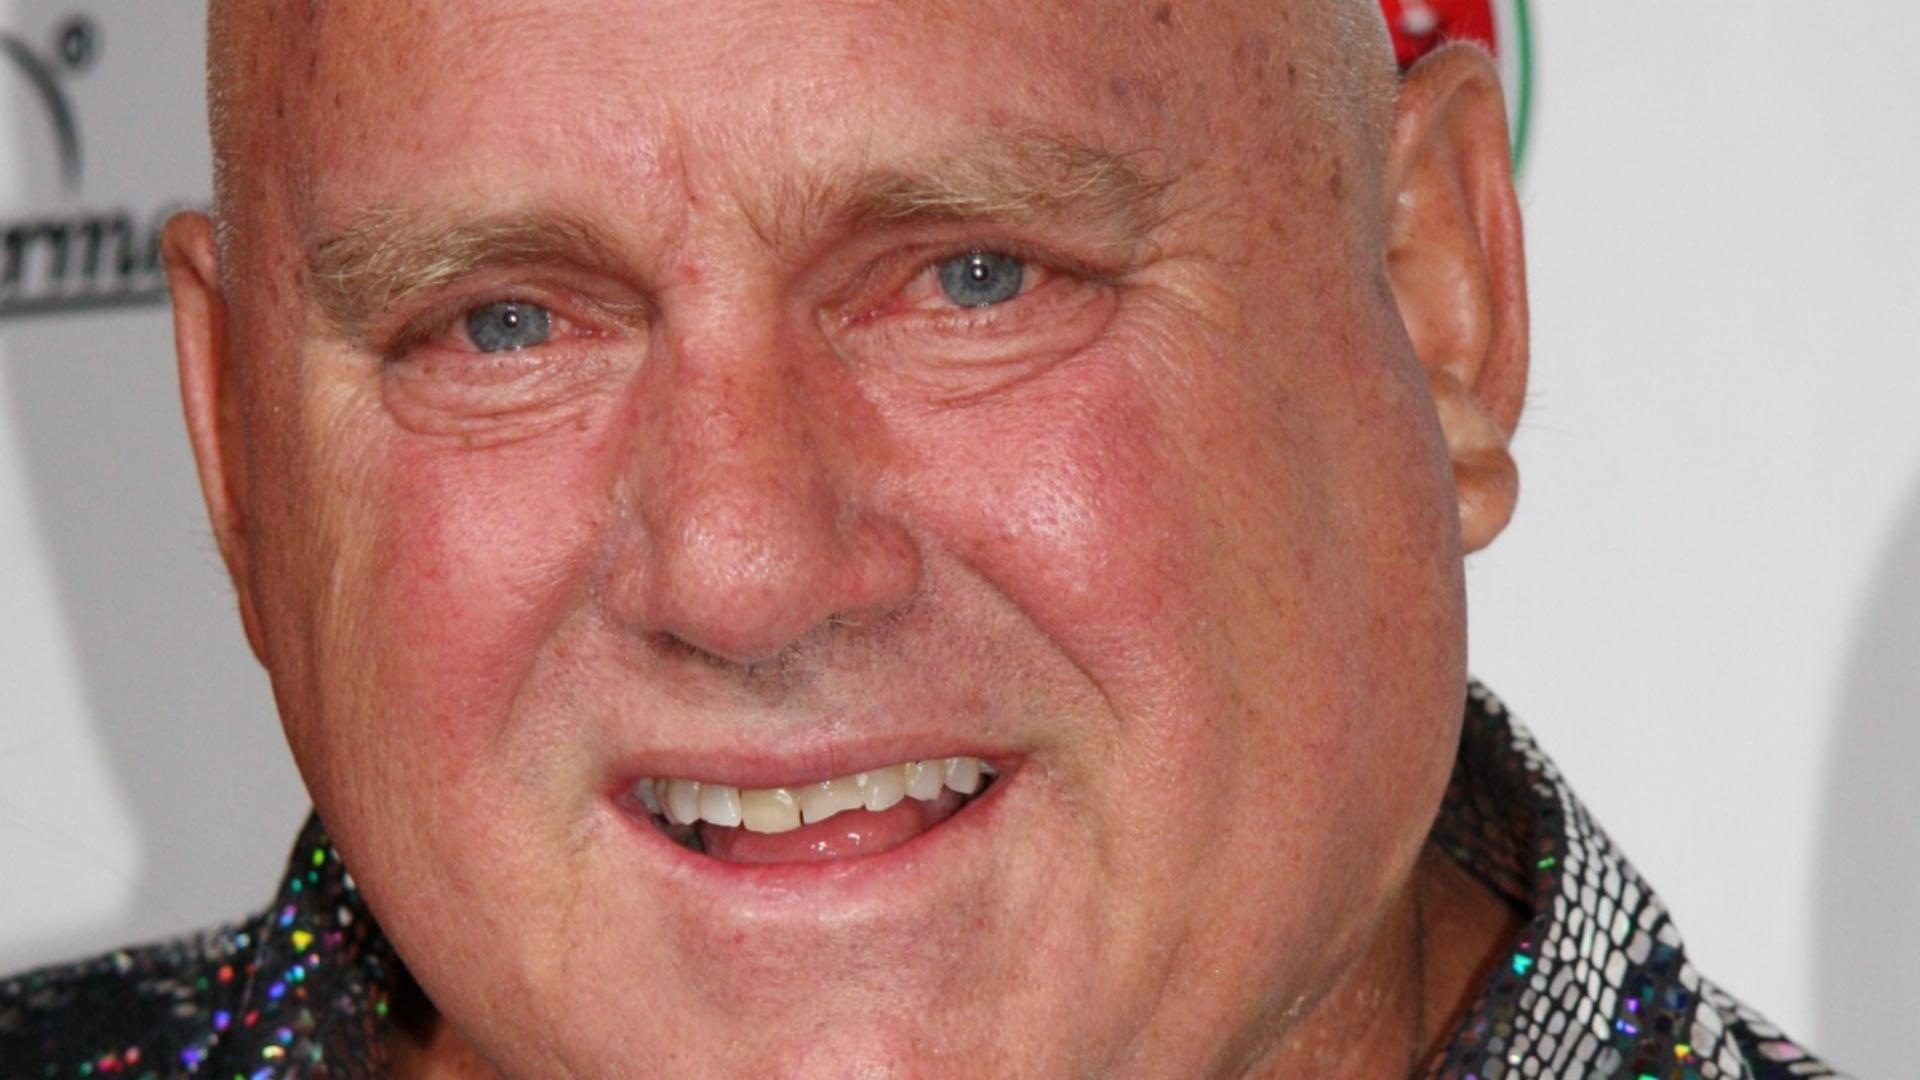 Politics - Famed Brothel Owner Dennis Hof Expected to Win Election, Despite Death